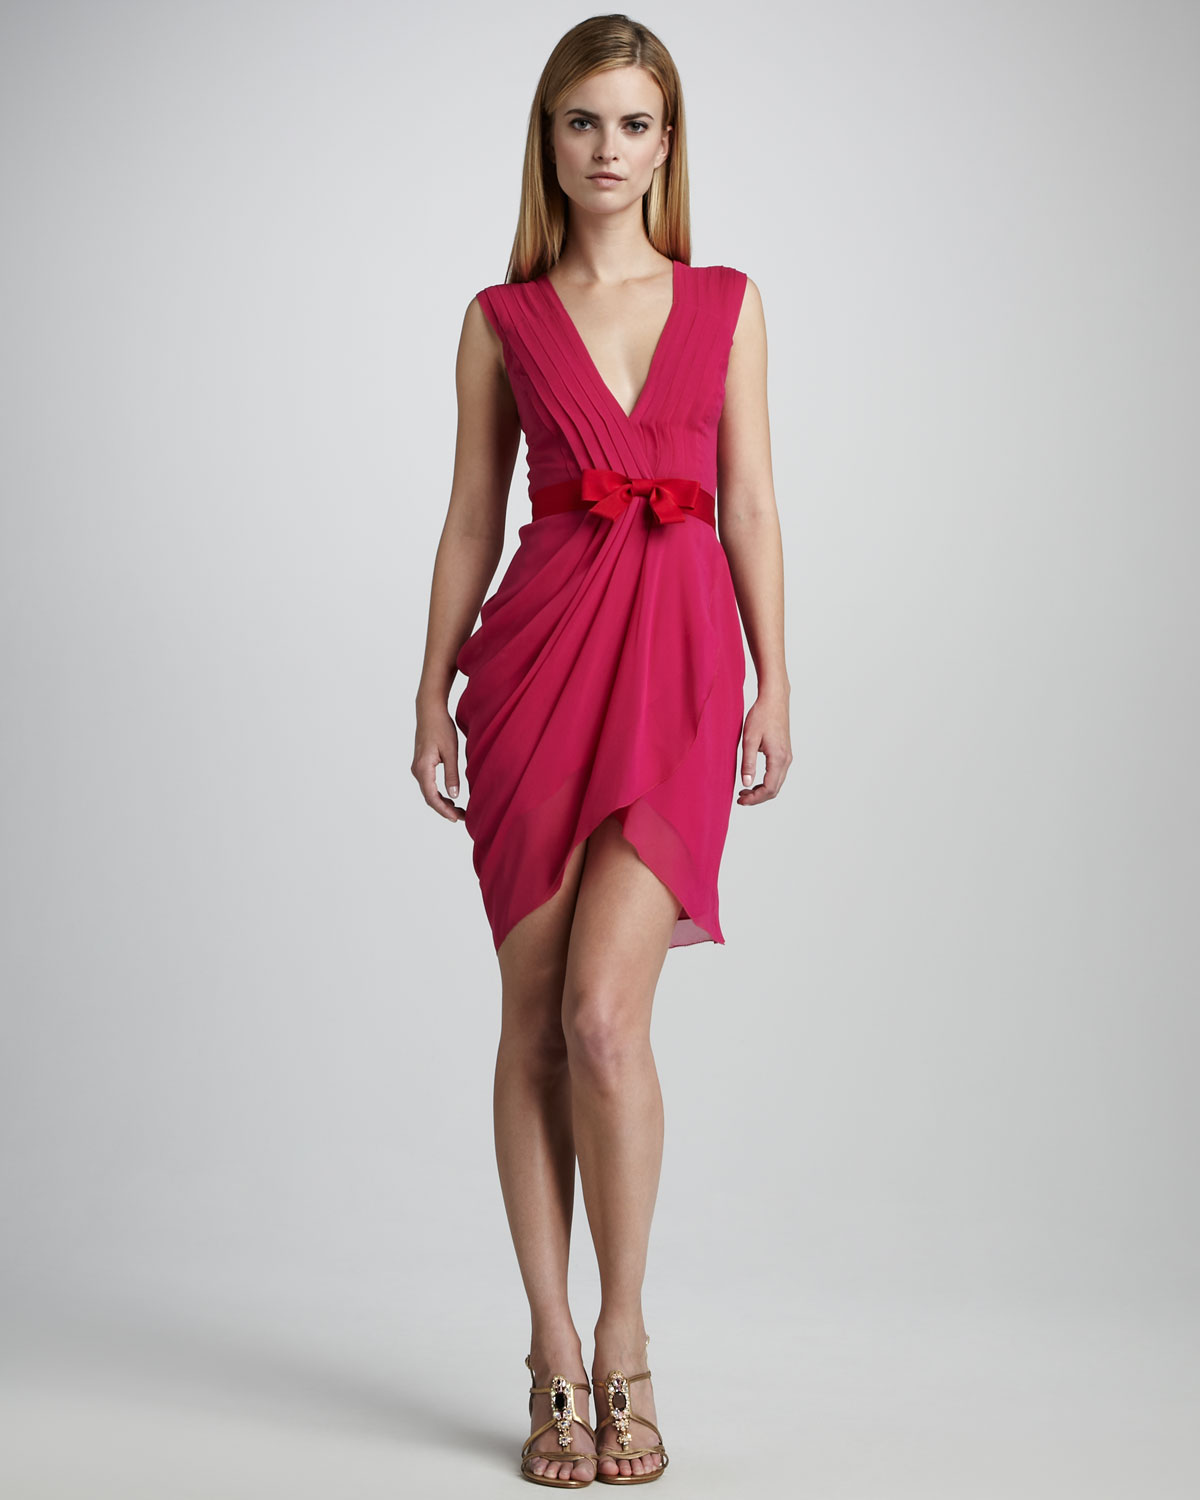 f170f75f0b18 Vera Wang Lavender Draped Fitted Cocktail Dress in Pink - Lyst